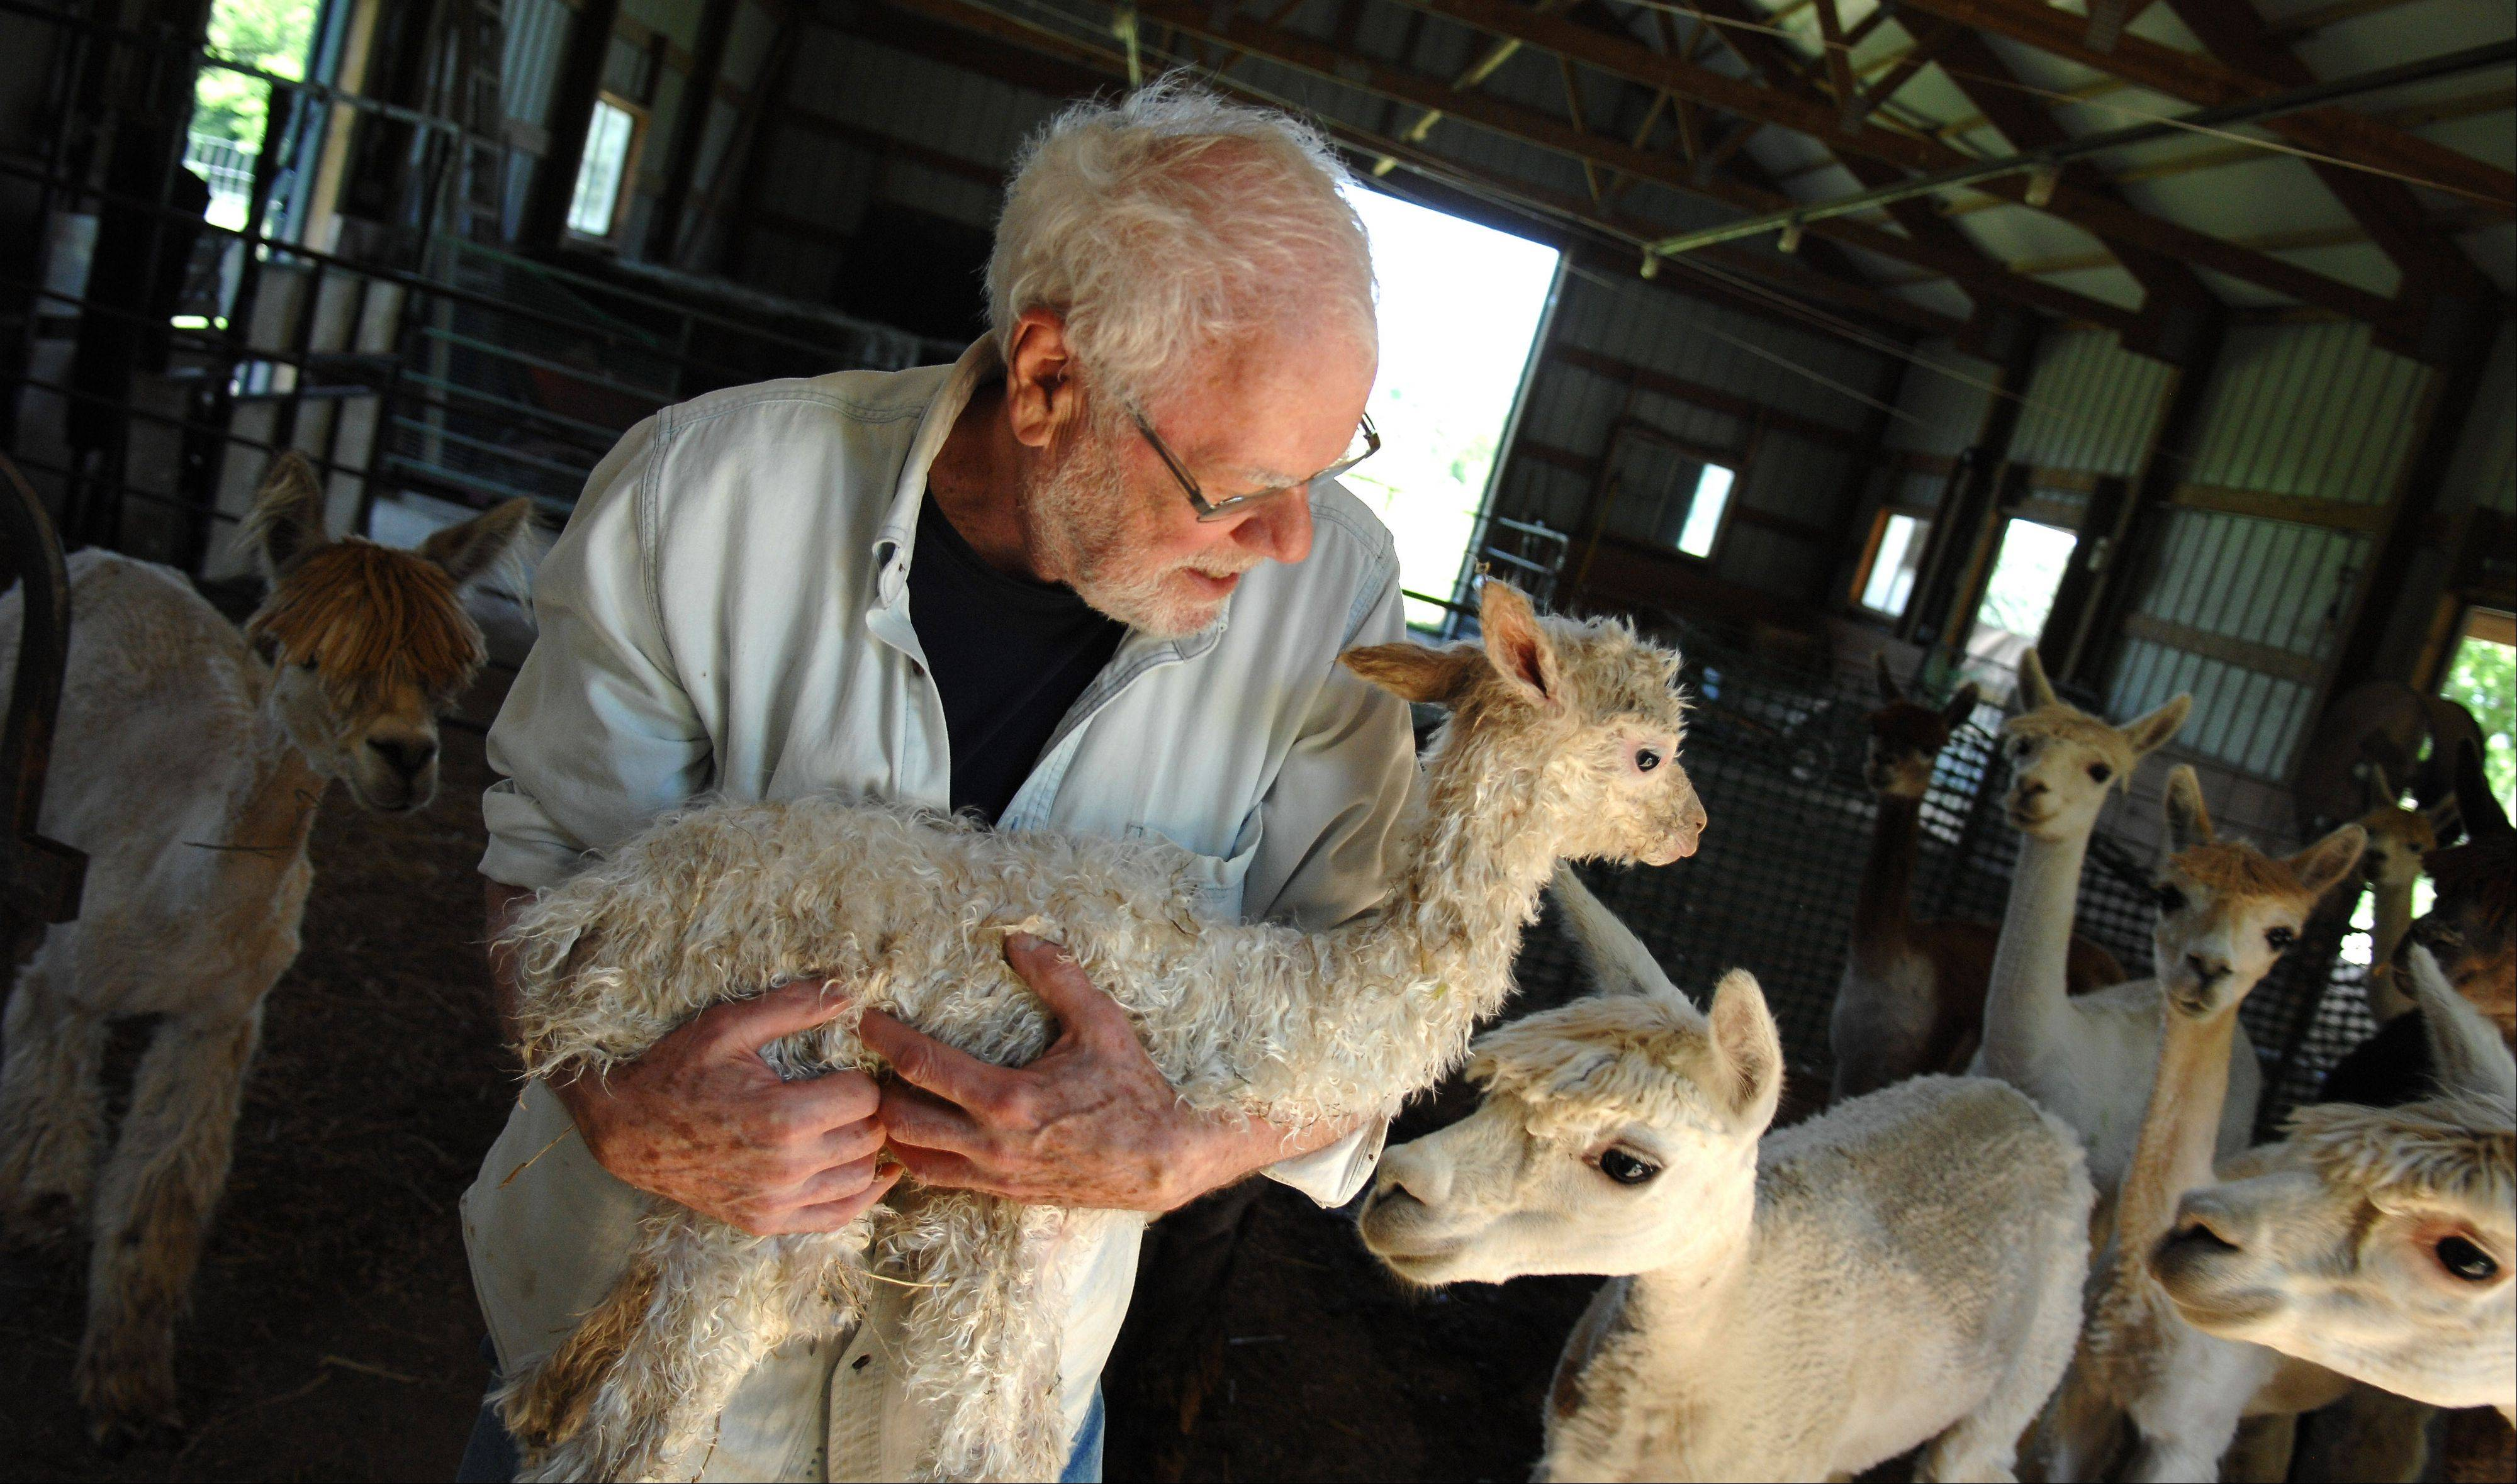 Ron Waldron of Waldron Grove Alpacas in Campton Hills carries a new baby alpaca out of the barn Tuesday.